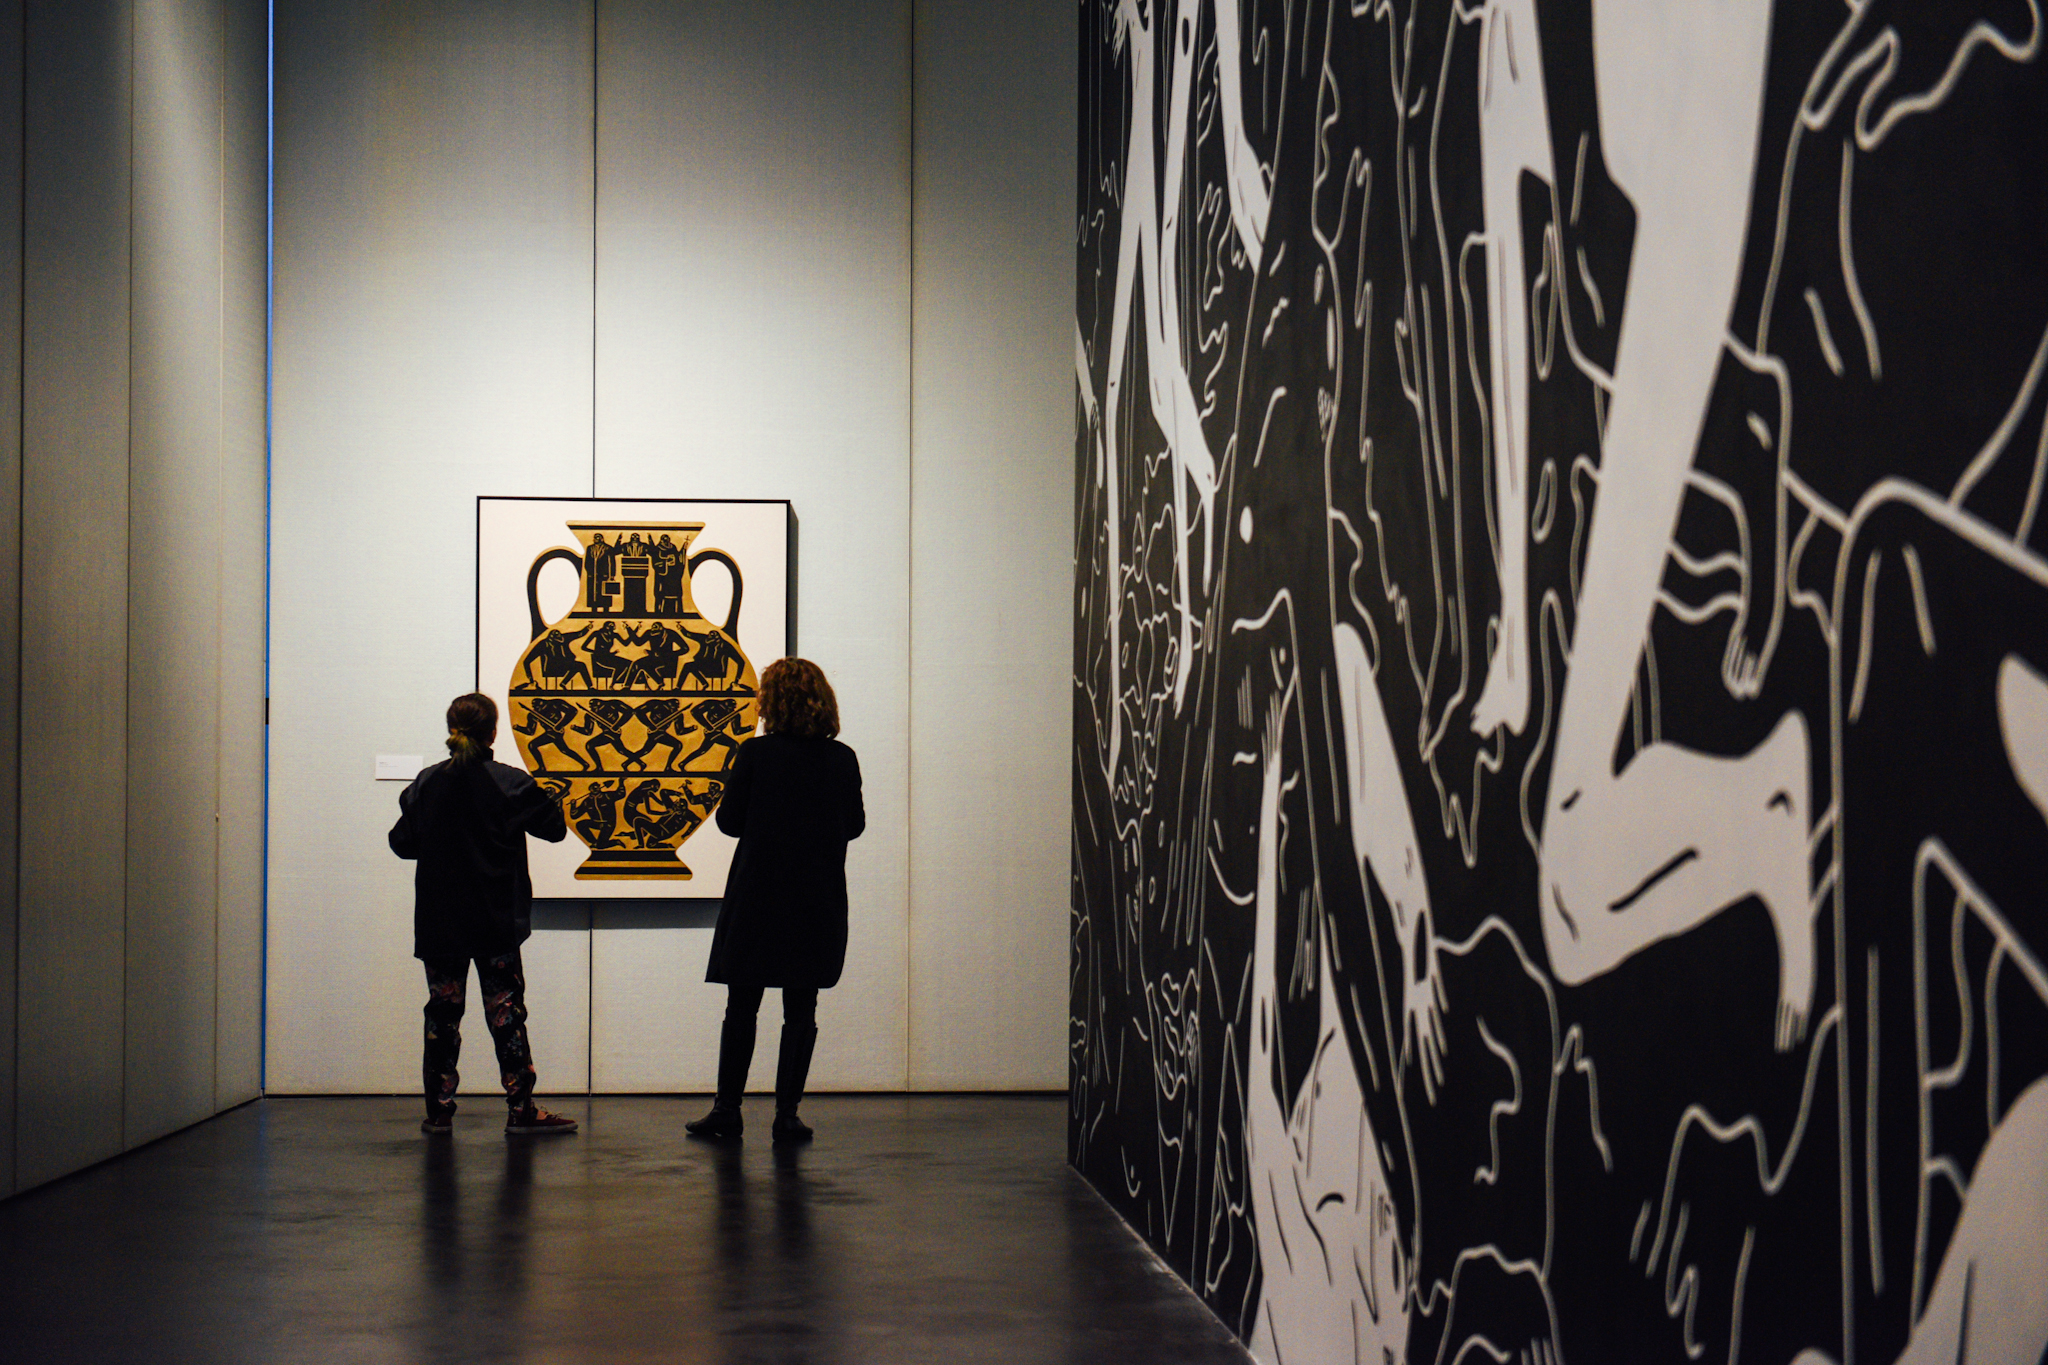 03162018_bruce_mca portugal the man cleon peterson_0024.jpg